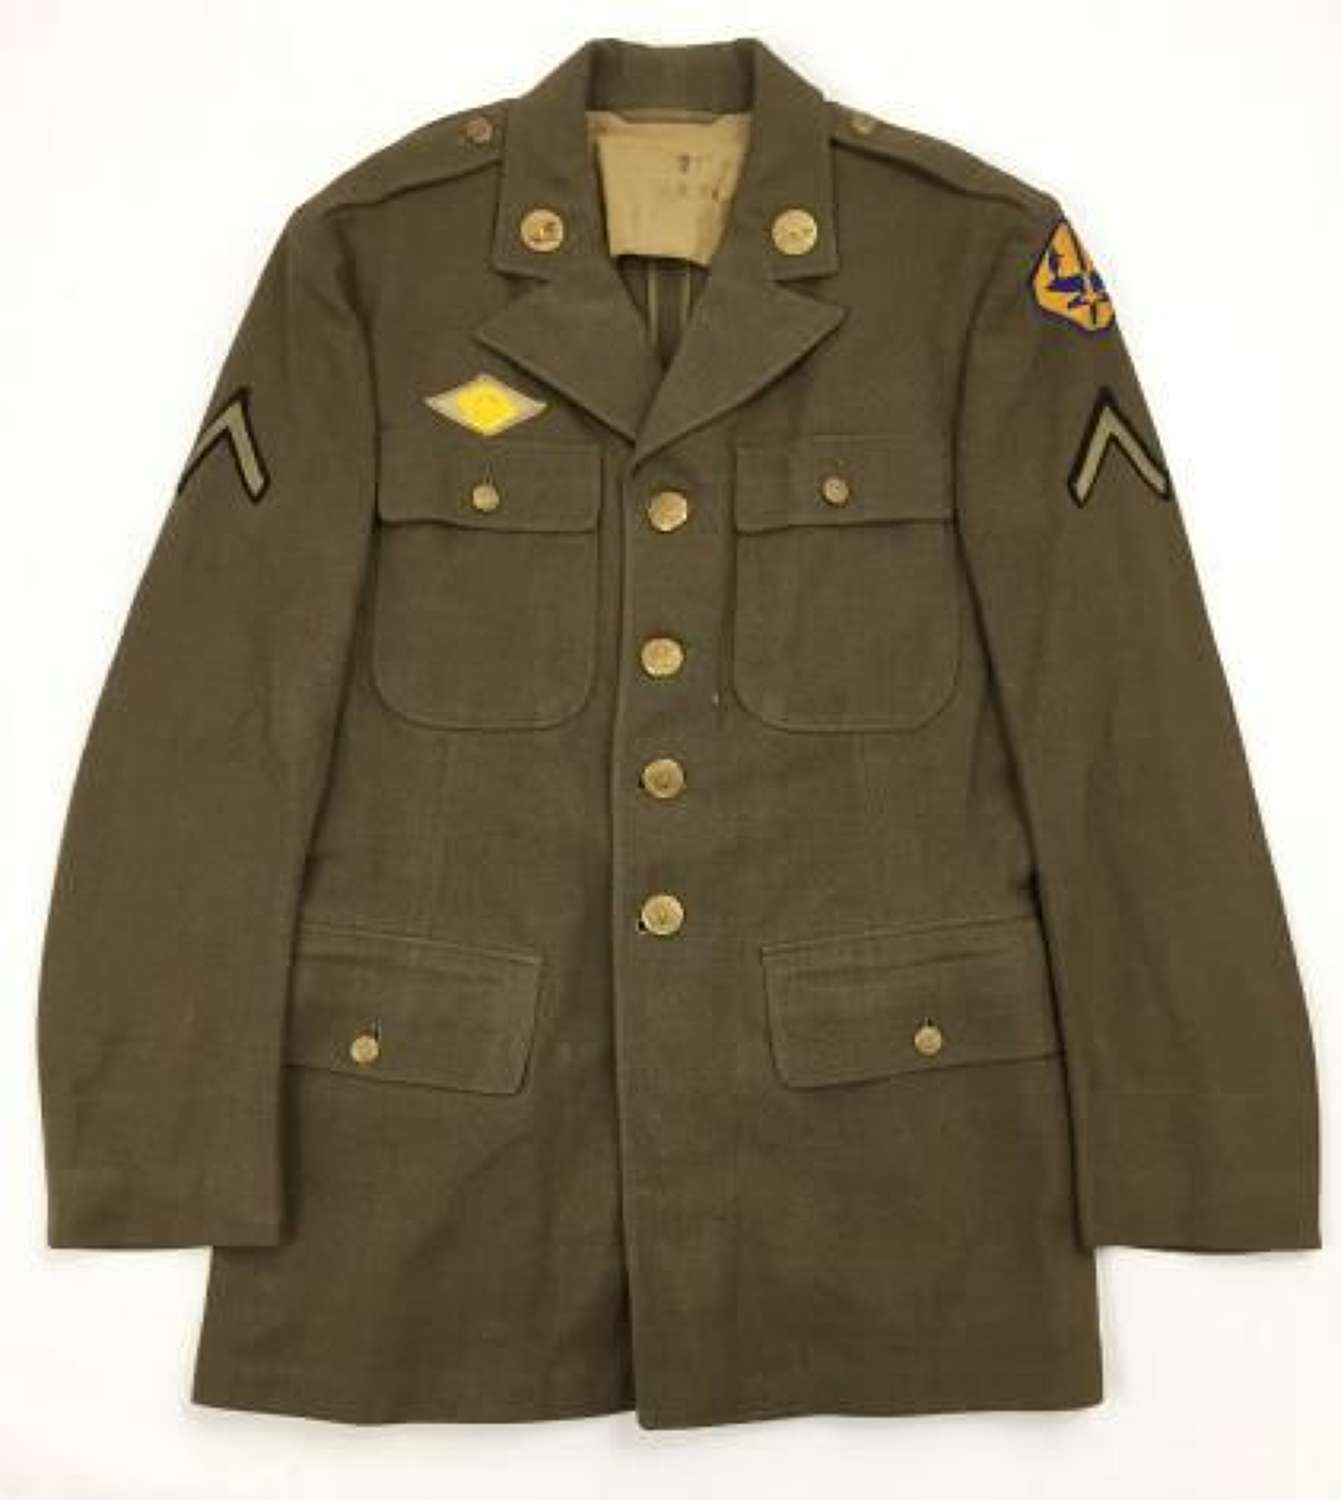 1942 Dated US Enlisted Men's Tunic - Size 39 R